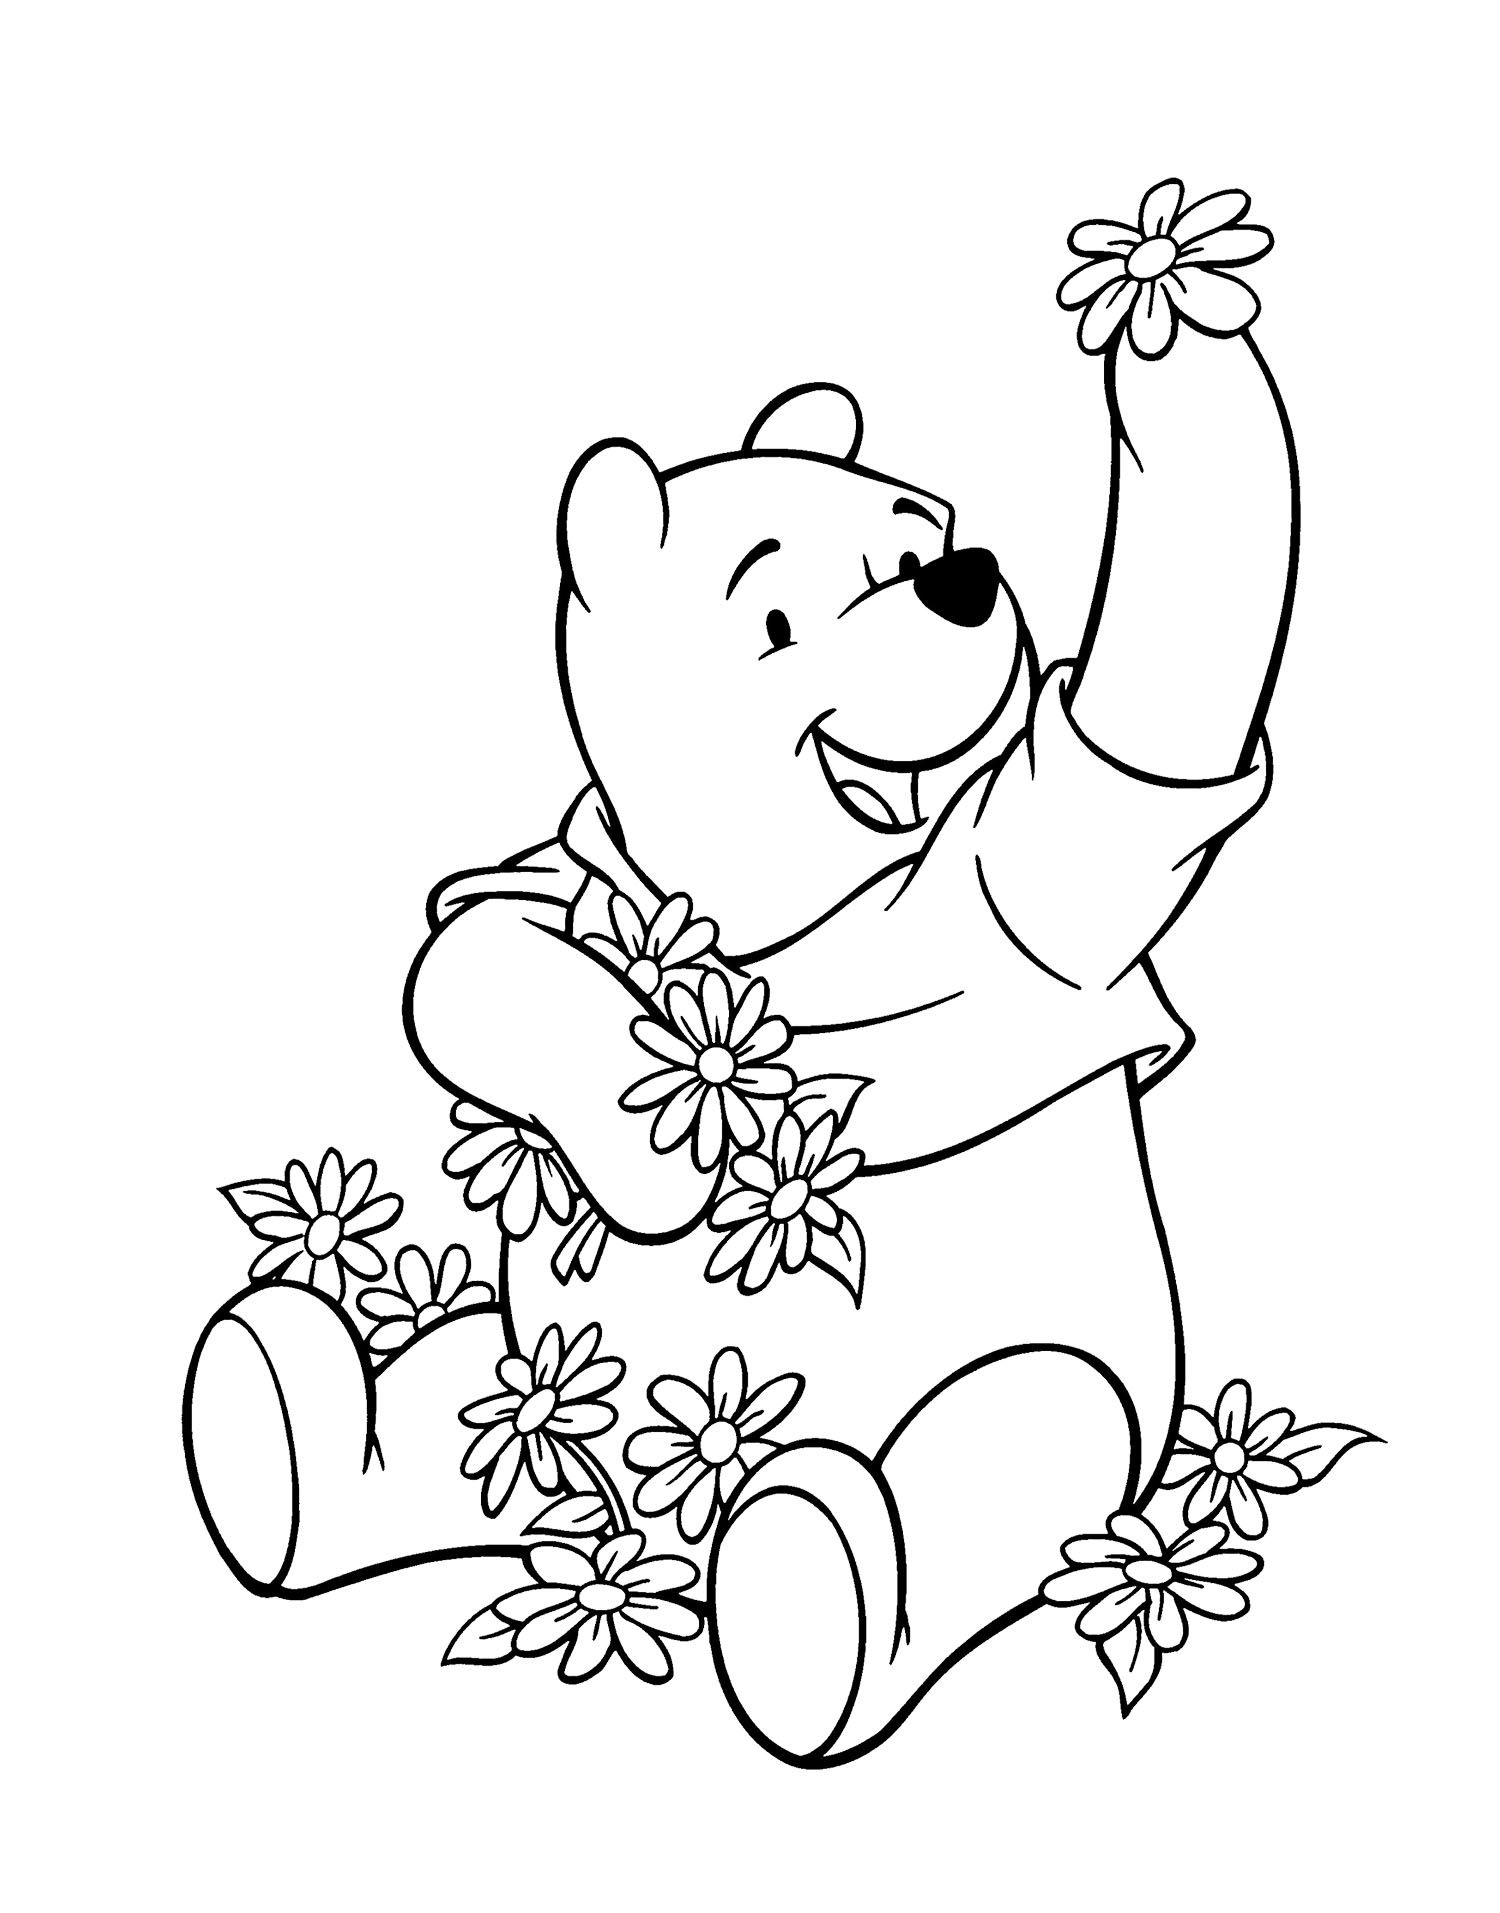 Winnie The Pooh And The Many Flowers Coloring Page | Winnie The Pooh ...